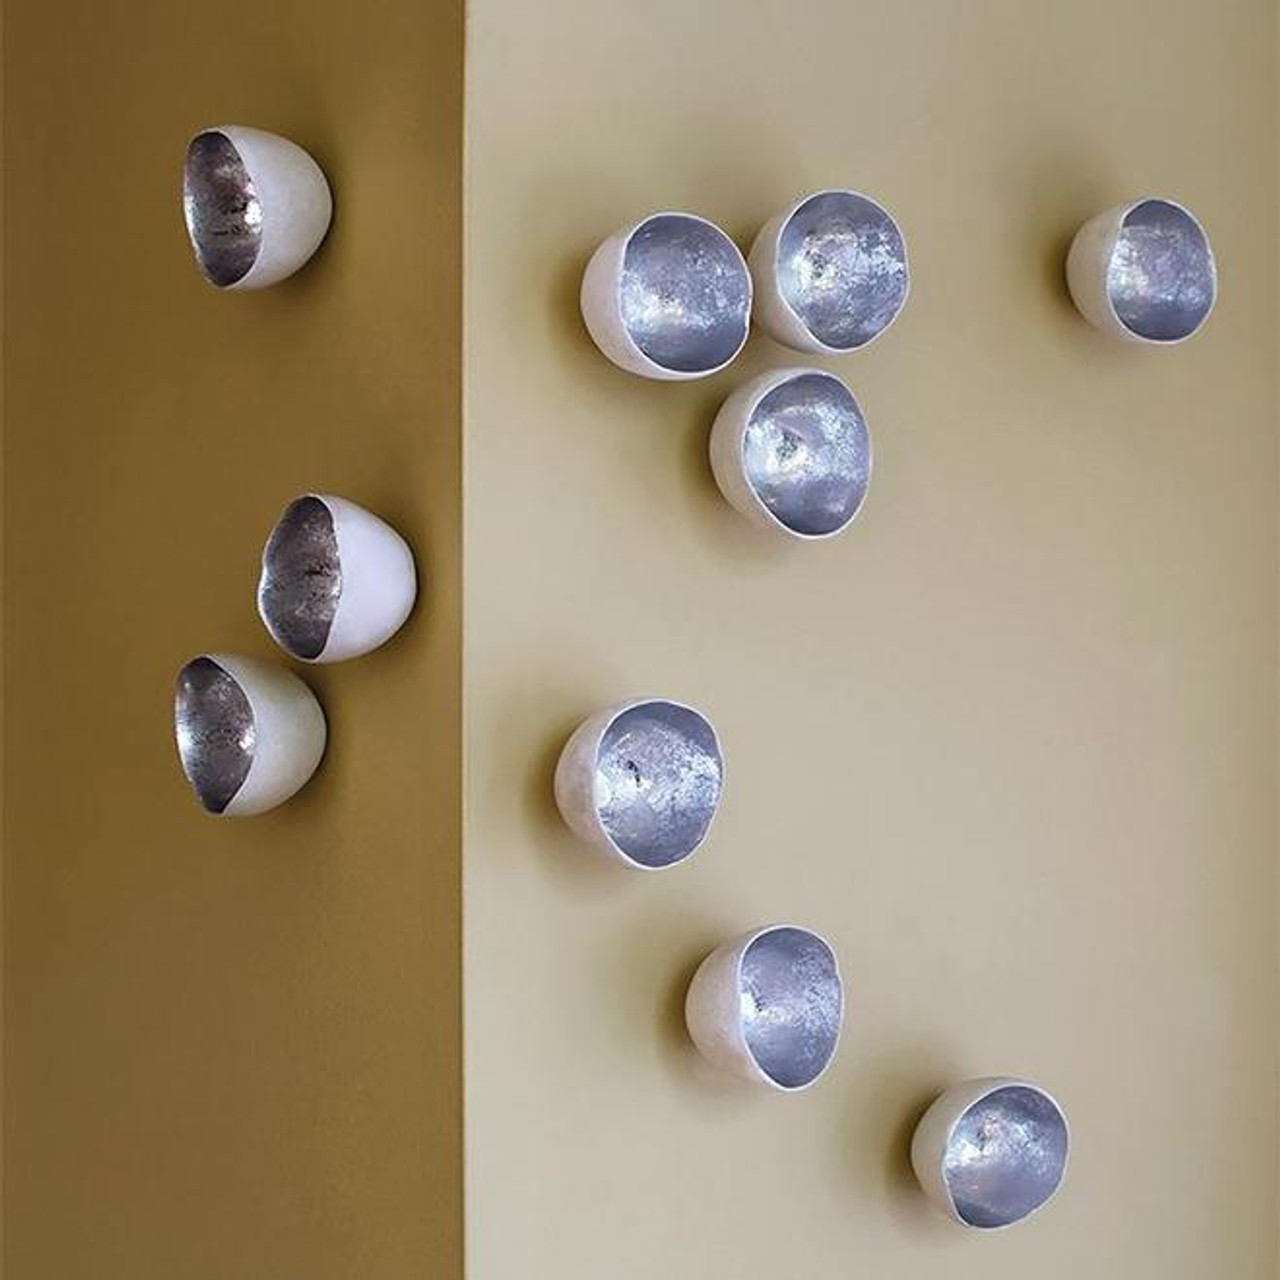 wall play silver seed set of 10